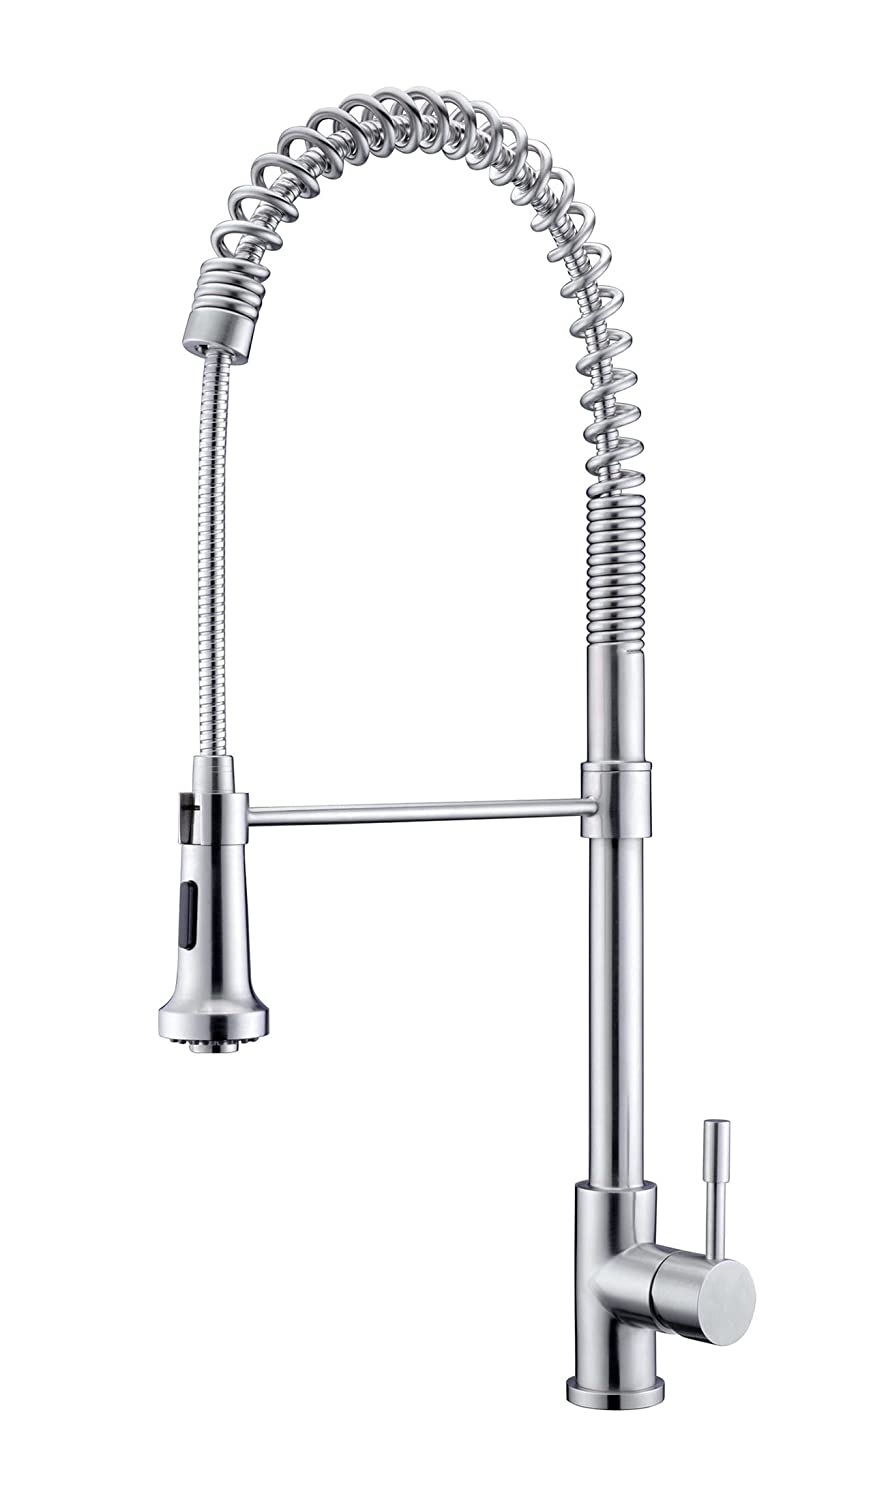 Purelux KingKong Commercial Style Coiled Spring Kitchen Faucet, Satin Stainless Finish, 10 YEAR WARRANTY, Professional Kitchen Sink Faucets